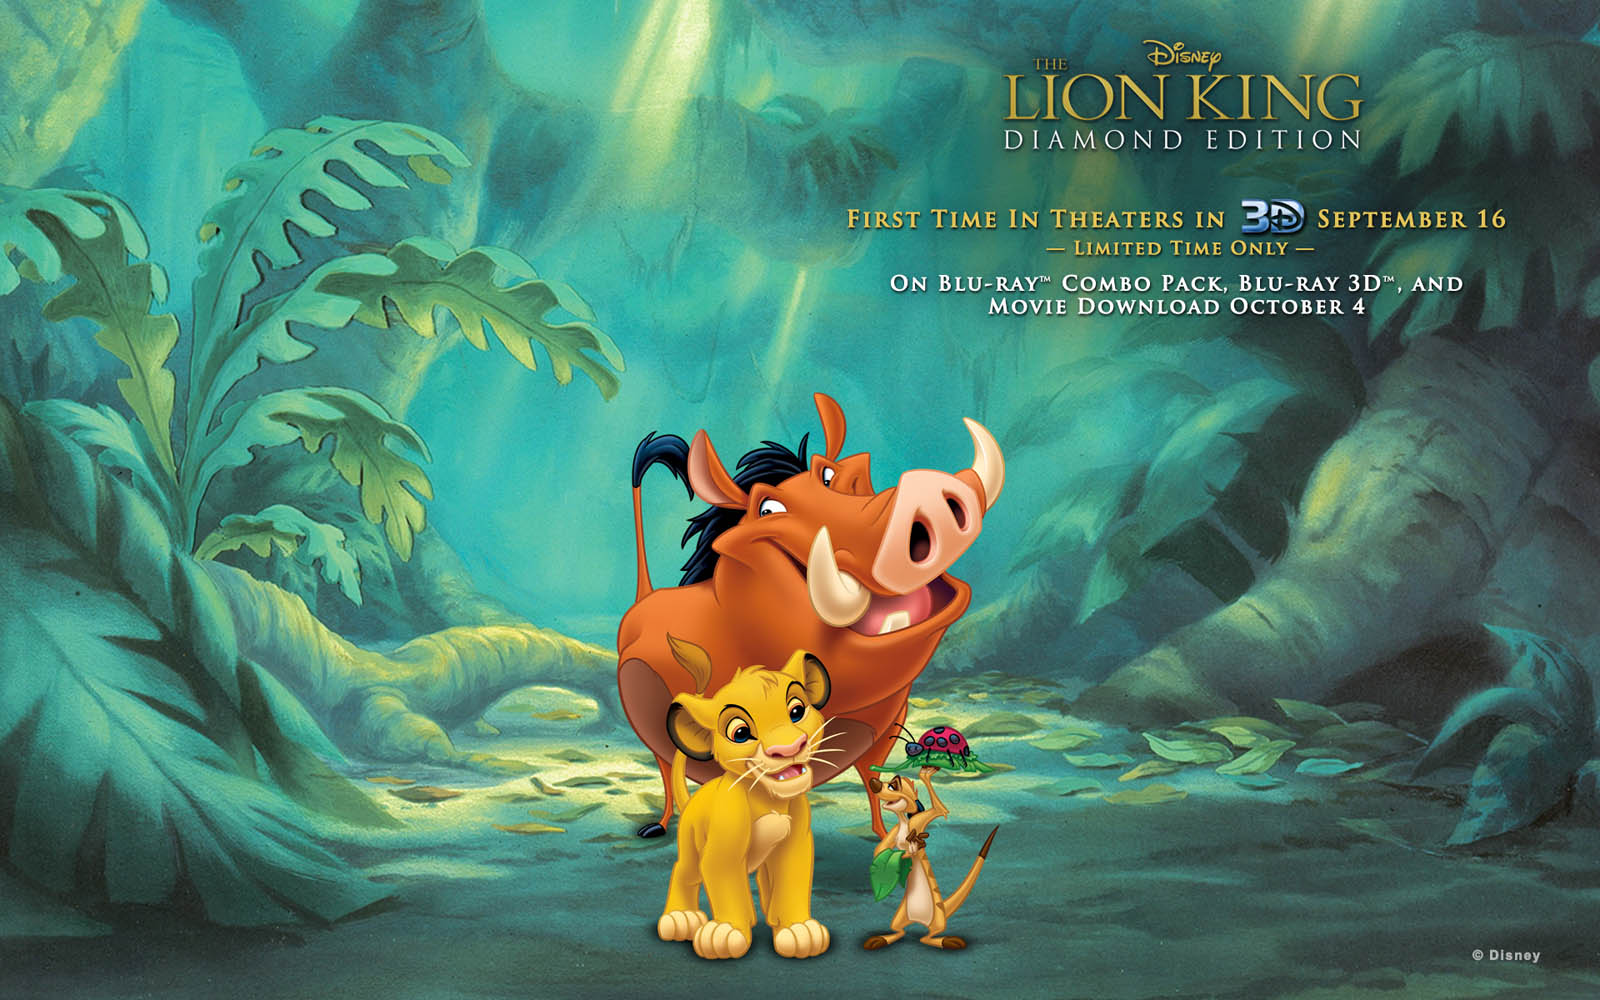 Wallpapers: The Lion King Wallpapers